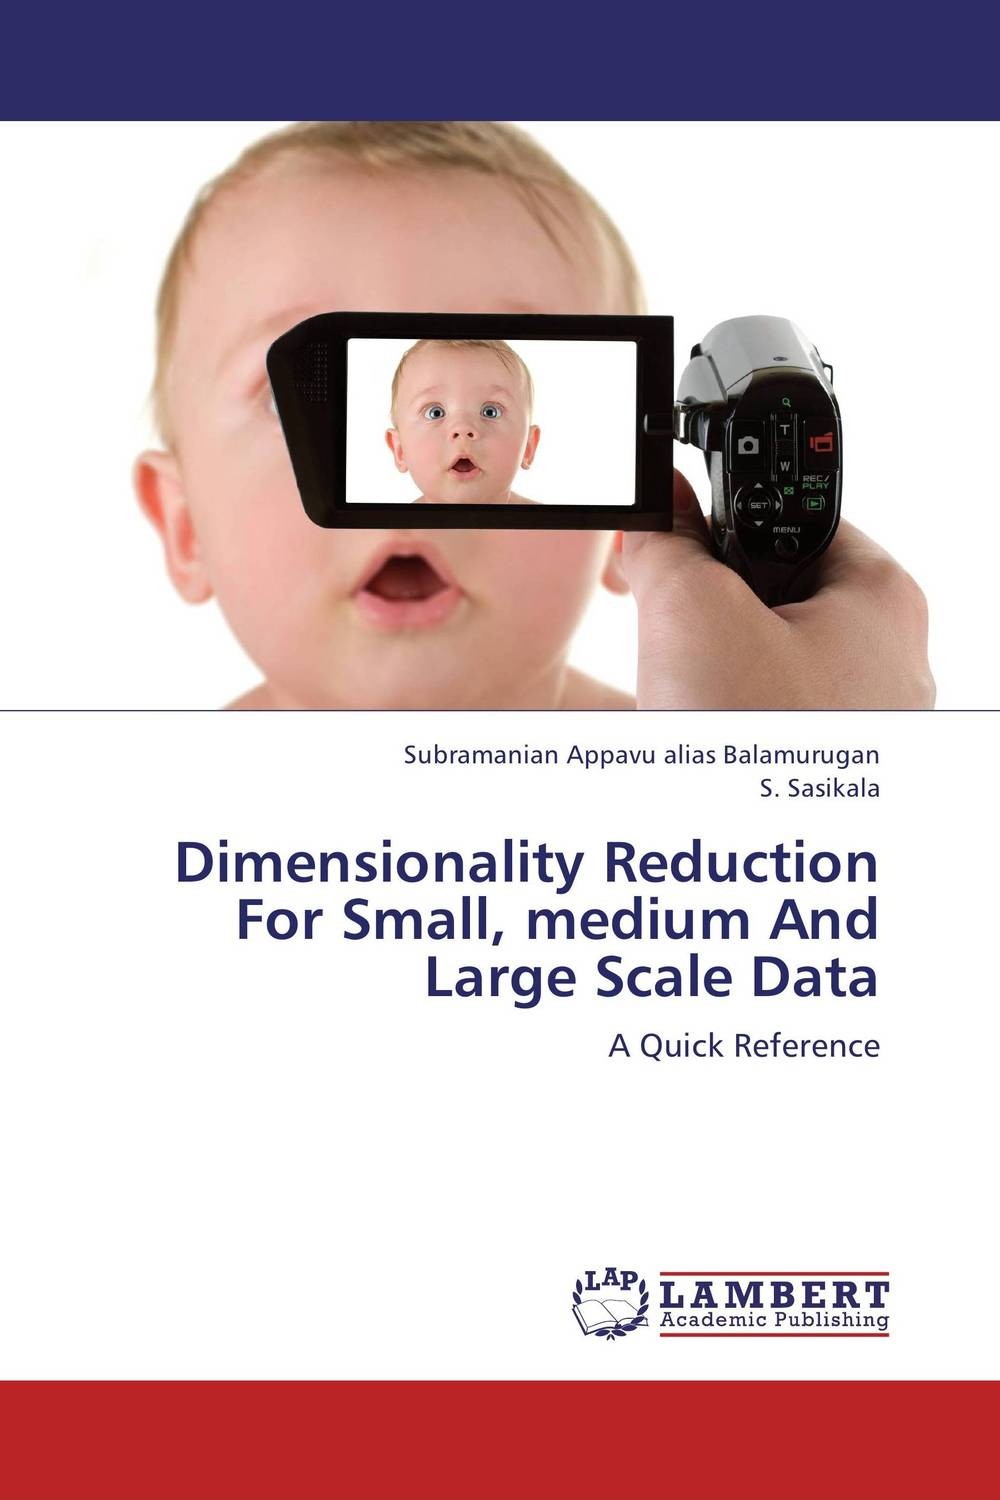 Dimensionality Reduction For Small, medium And Large Scale Data effective dimensionality reduction in pattern recognition